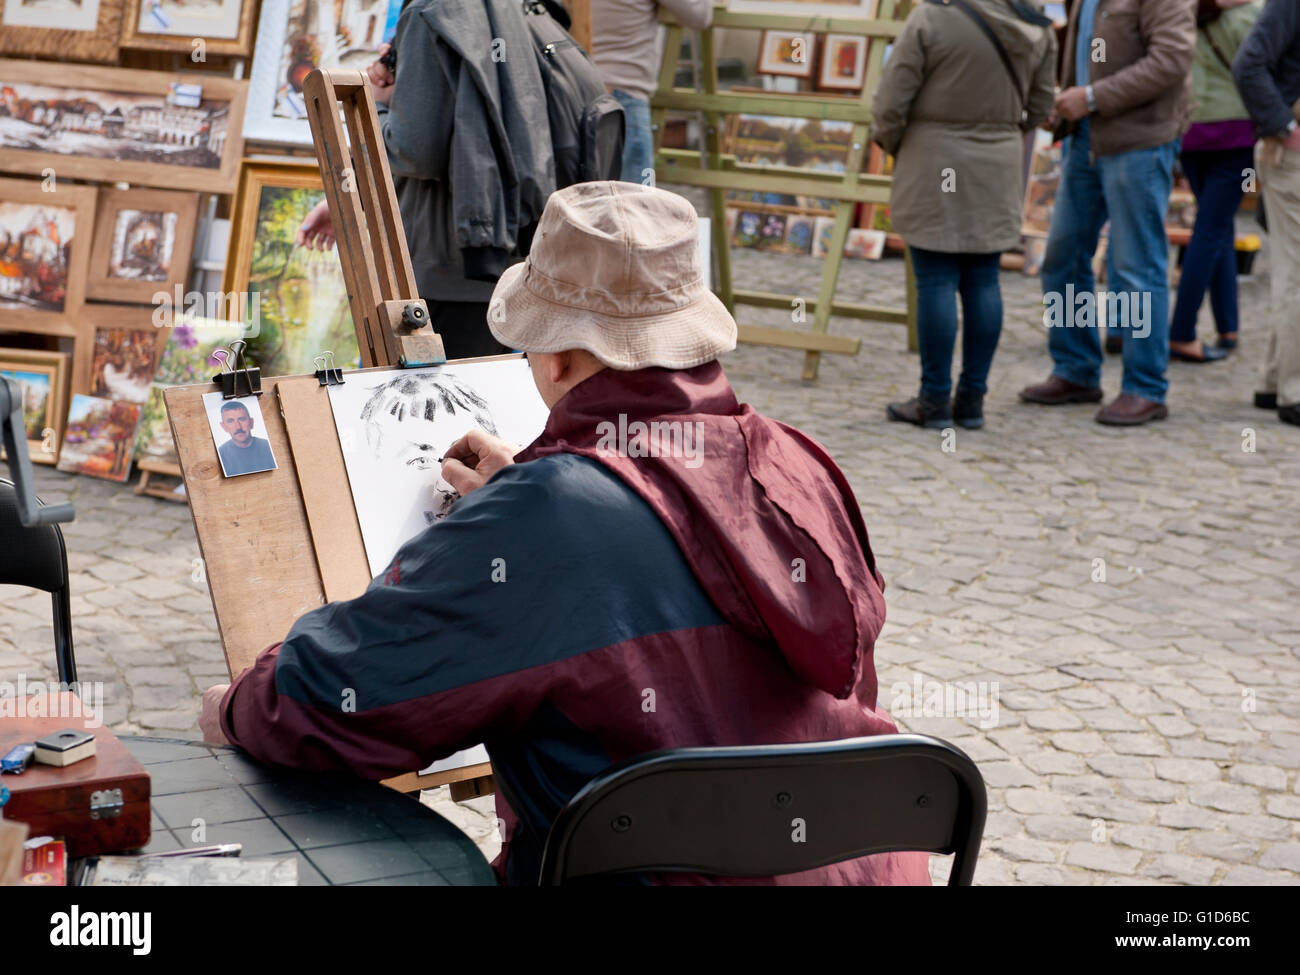 Male artist drawing man portrait from the small picture at the bazaar in Kazimierz Dolny, Poland, Europe, bohemian - Stock Image